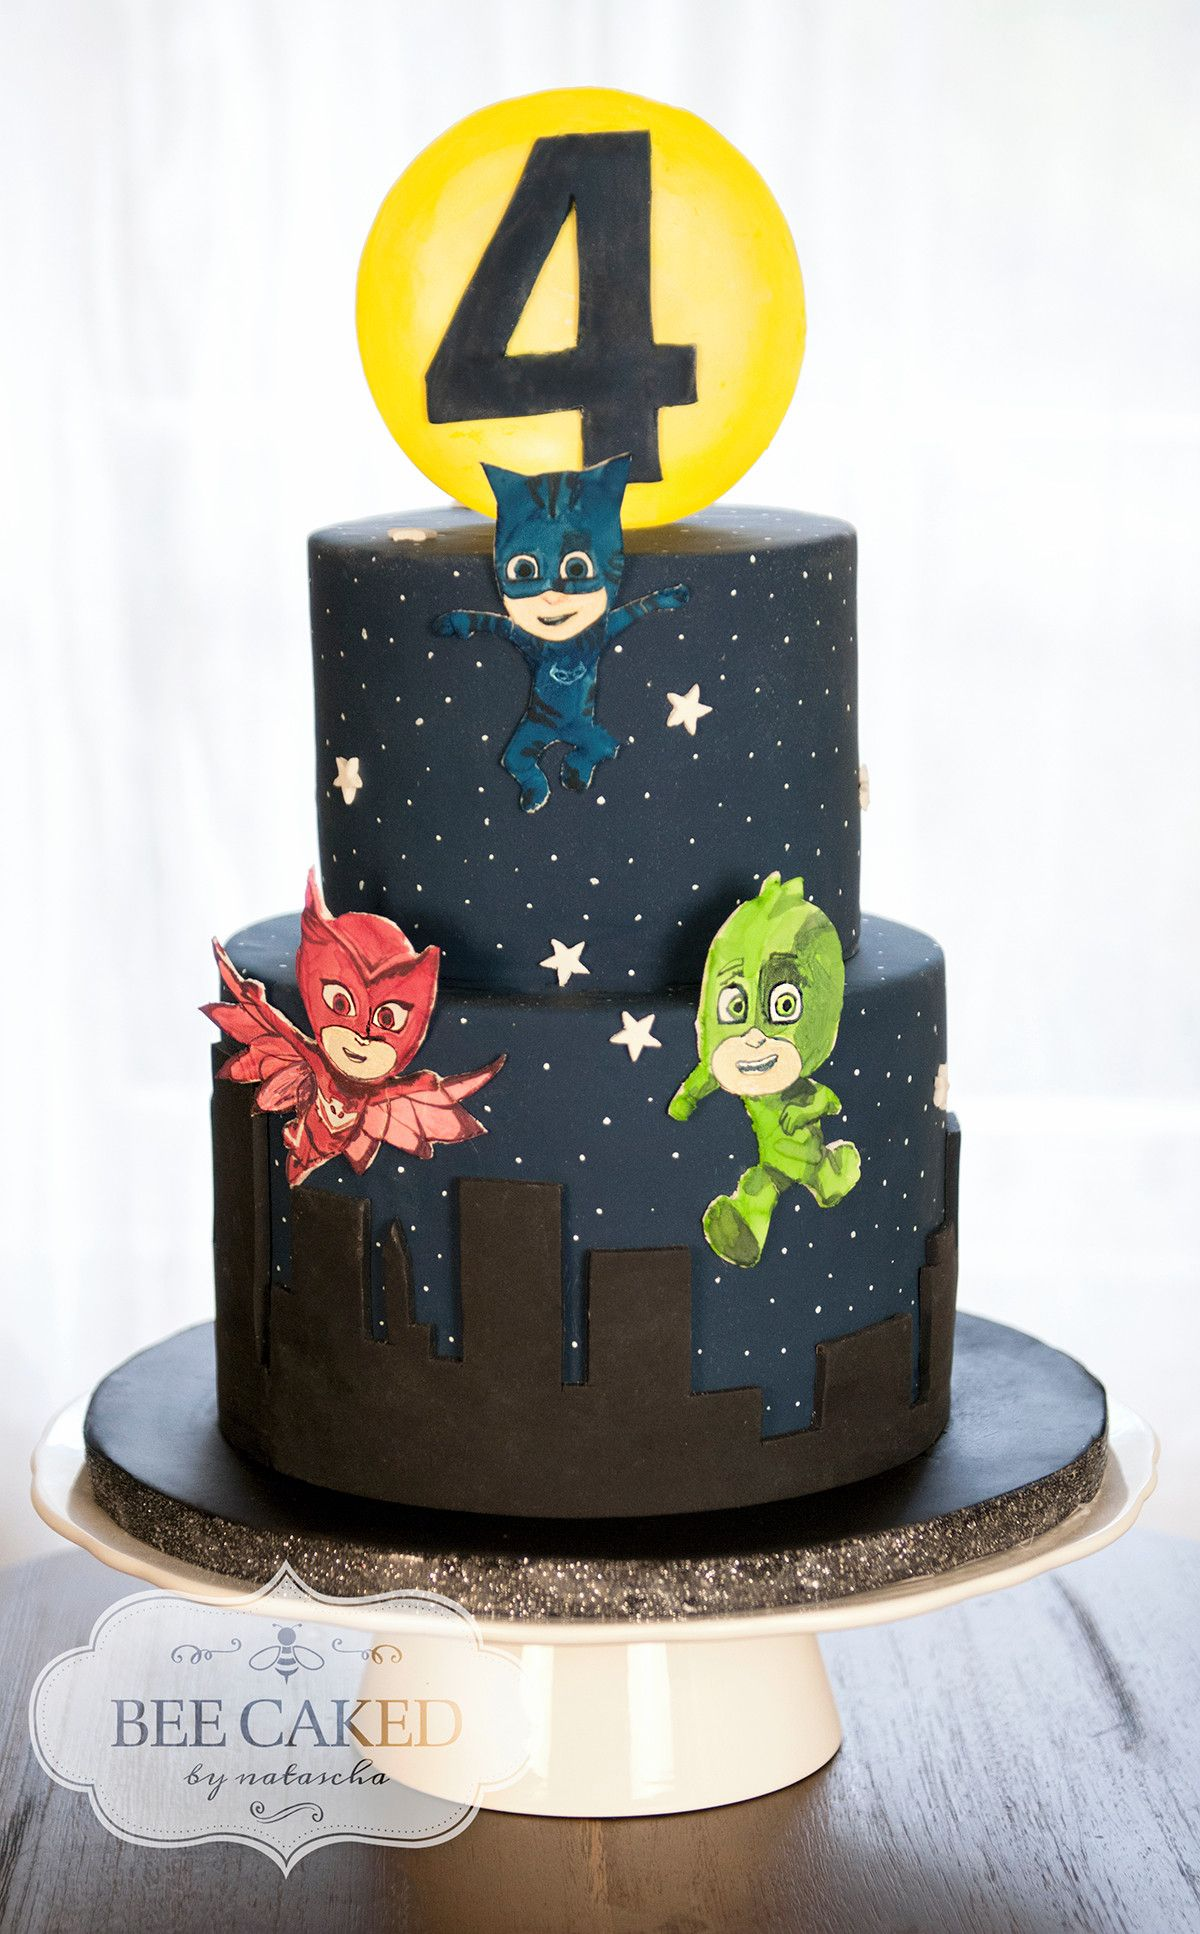 PJ Masks Cake For 4 Year Old